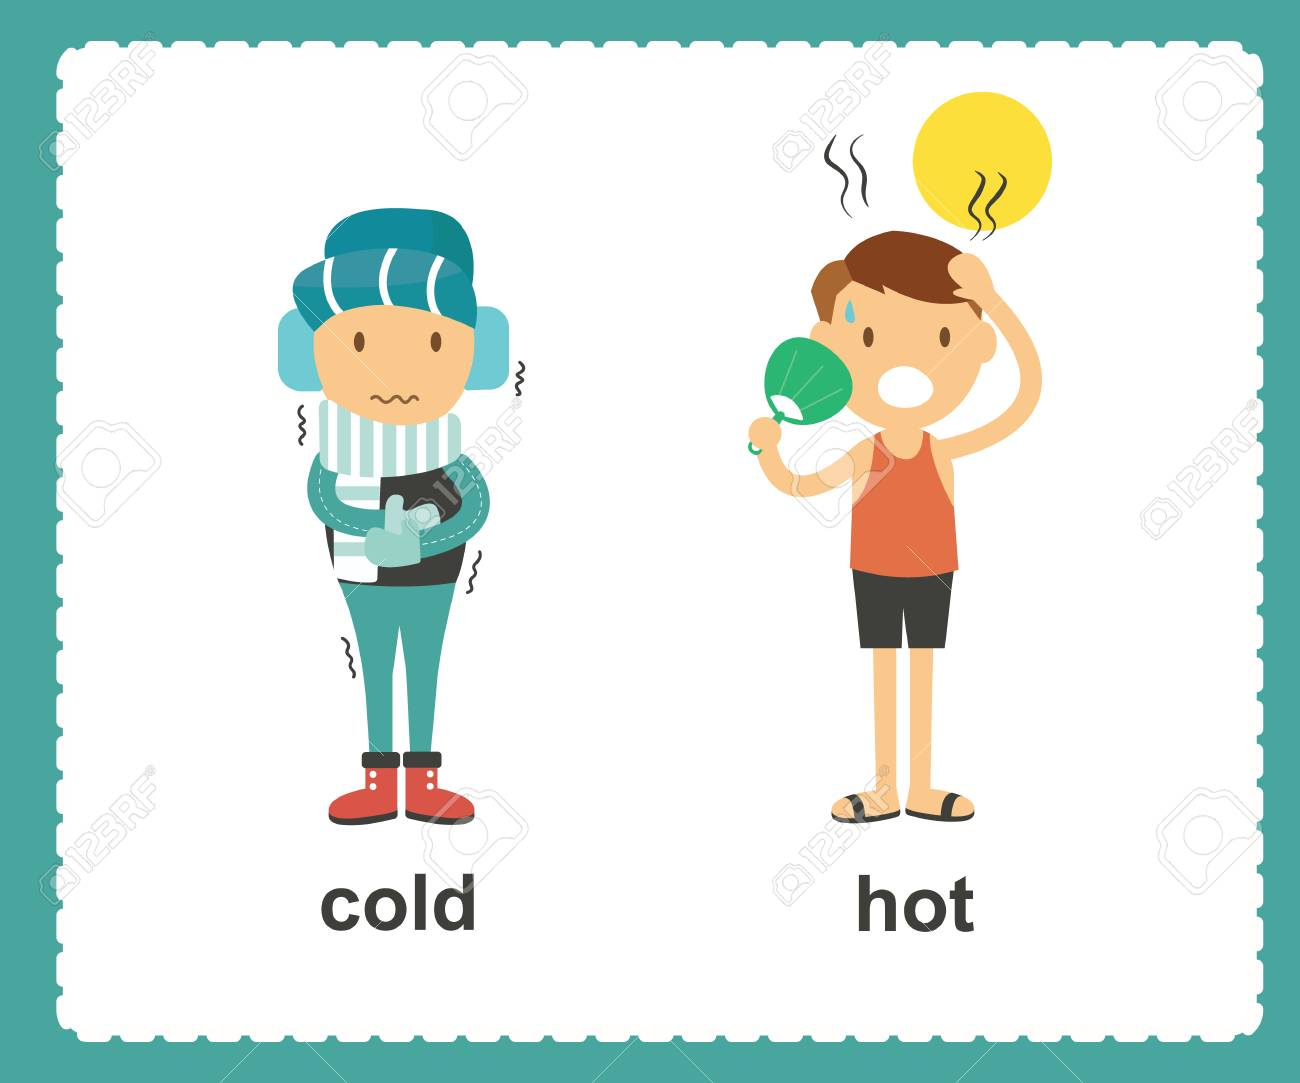 Opposite English Words cold and hot vector illustration - 99938899